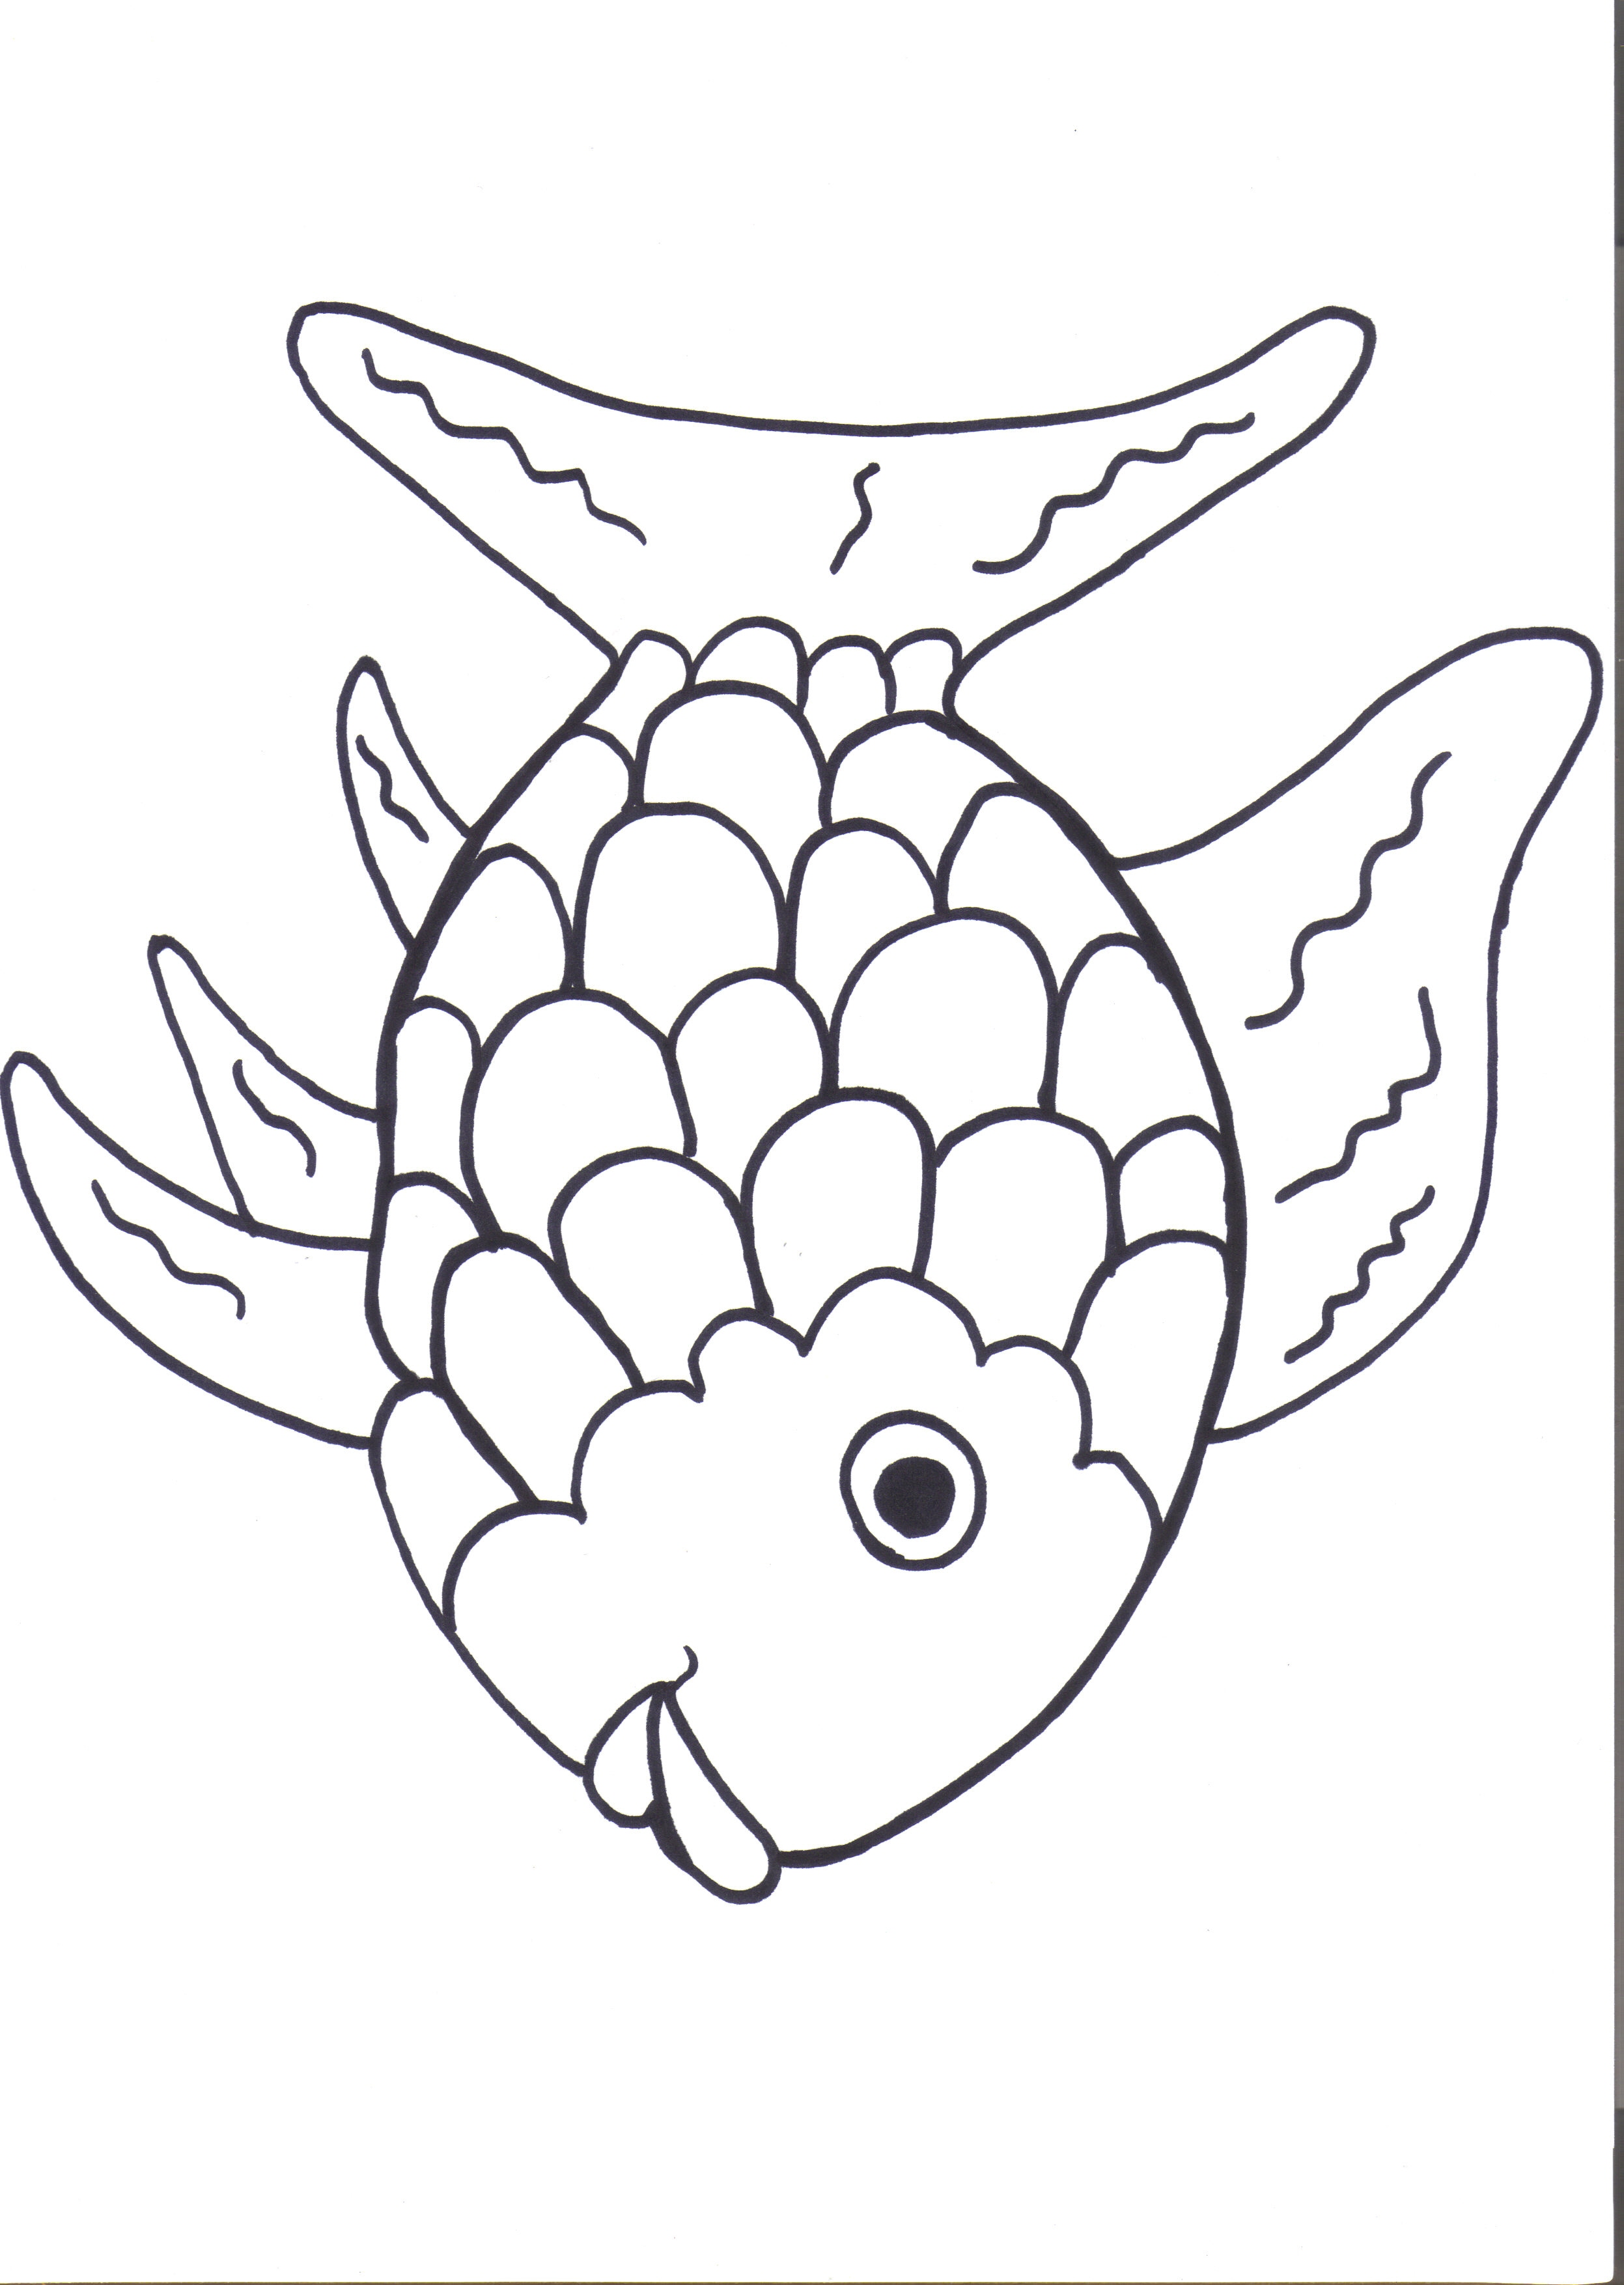 Rainbow Fish Coloring Page Free Large Images Clip Art Library